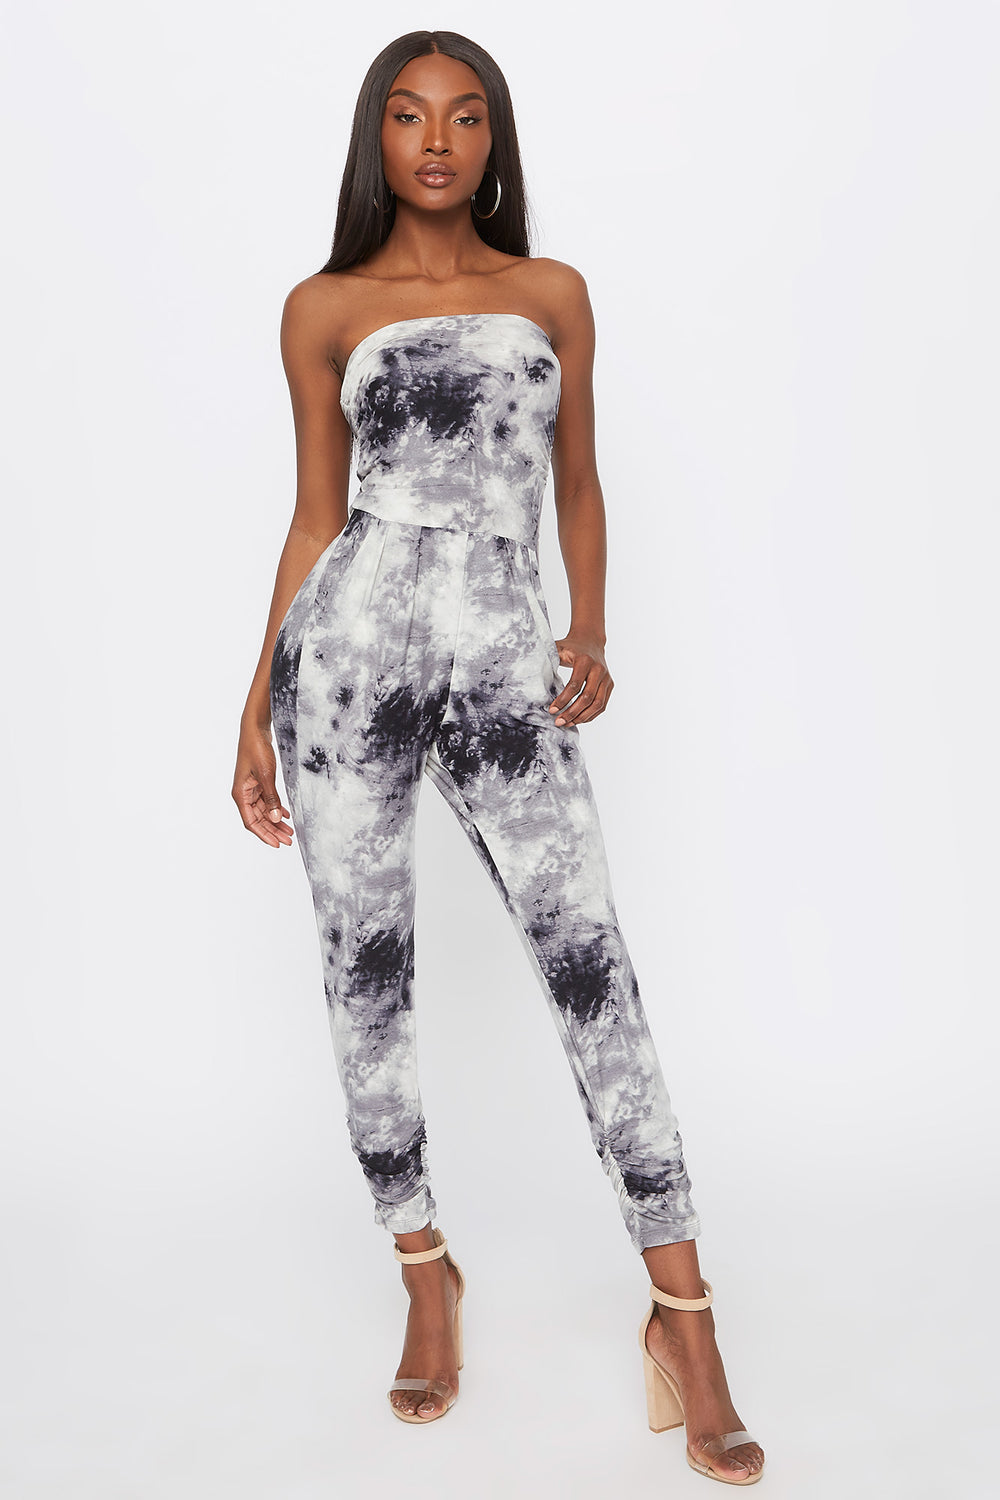 Soft Tie Dye Strapless Ruched Jumpsuit Black